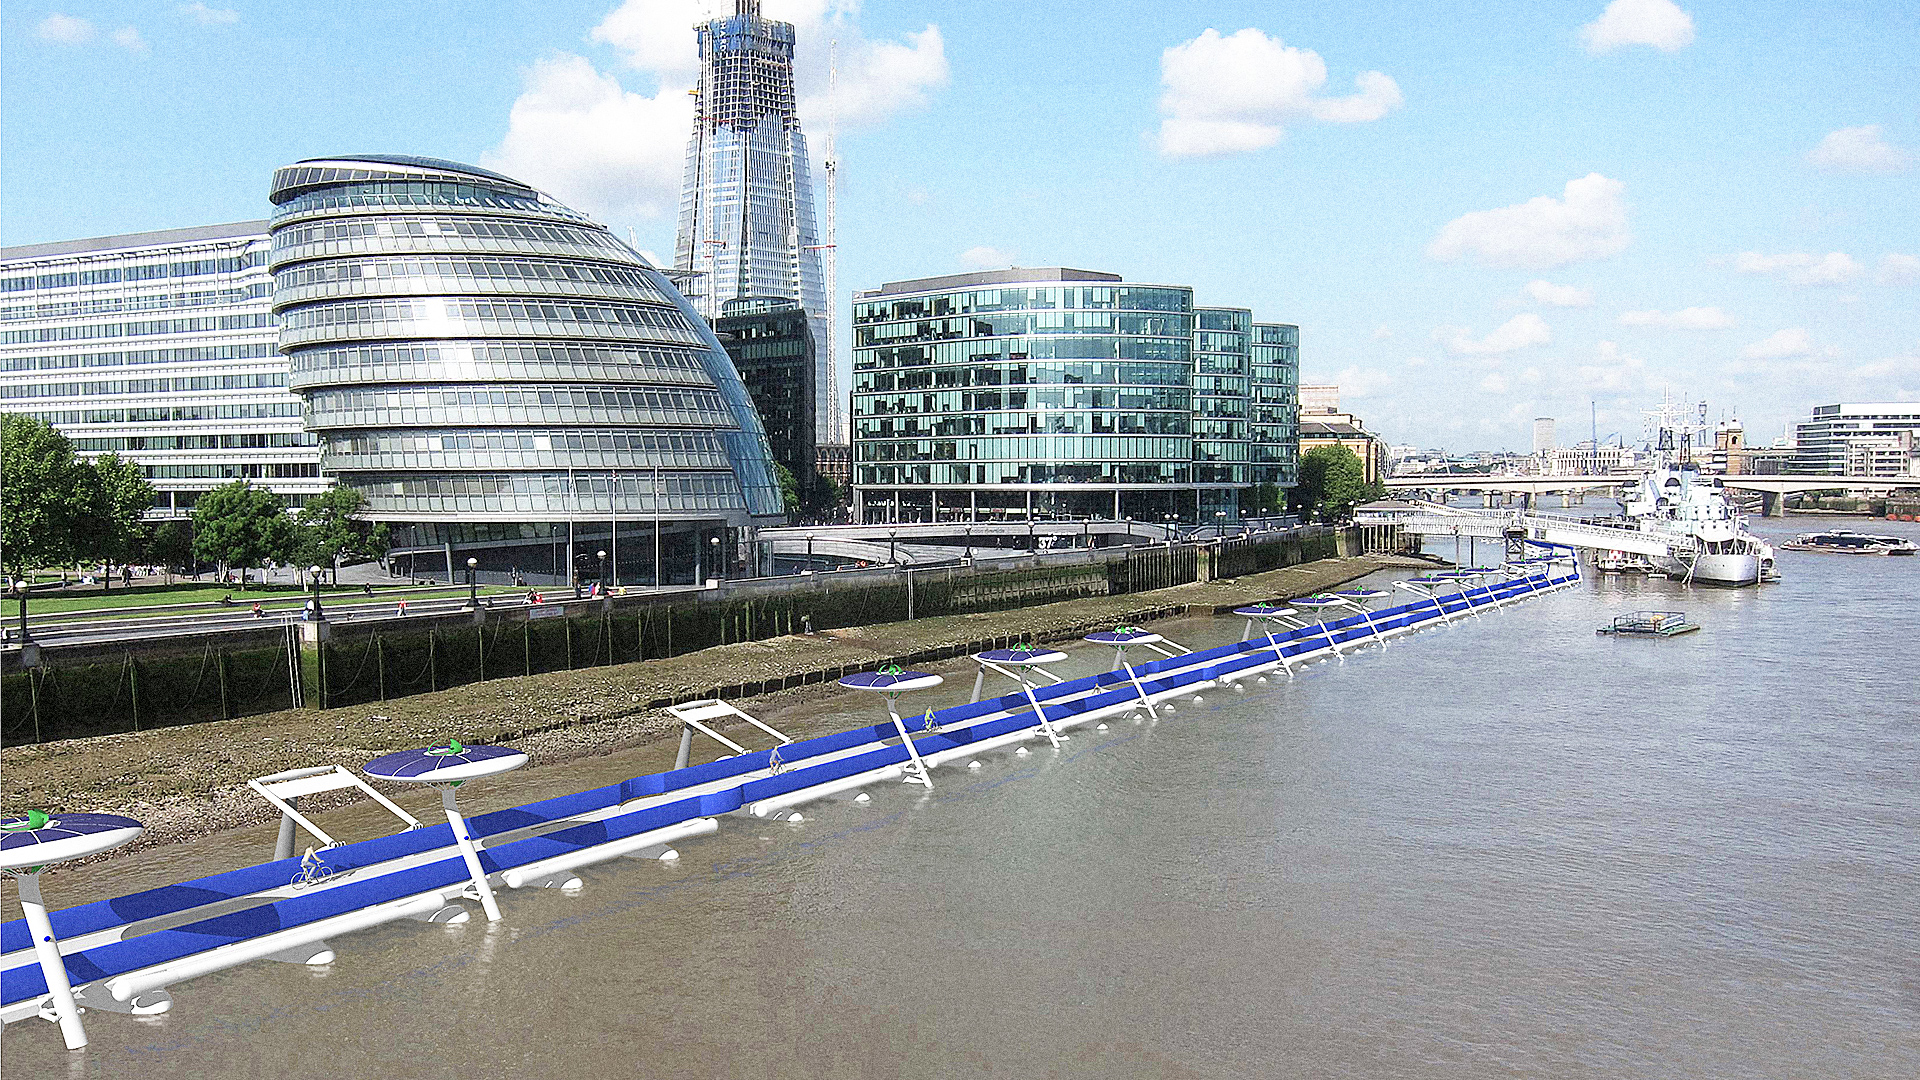 3036722-poster-p-1-this-floating-bike-path-in-the-thames-river-would-give-london-cyclists-a-car-free-commute.jpg